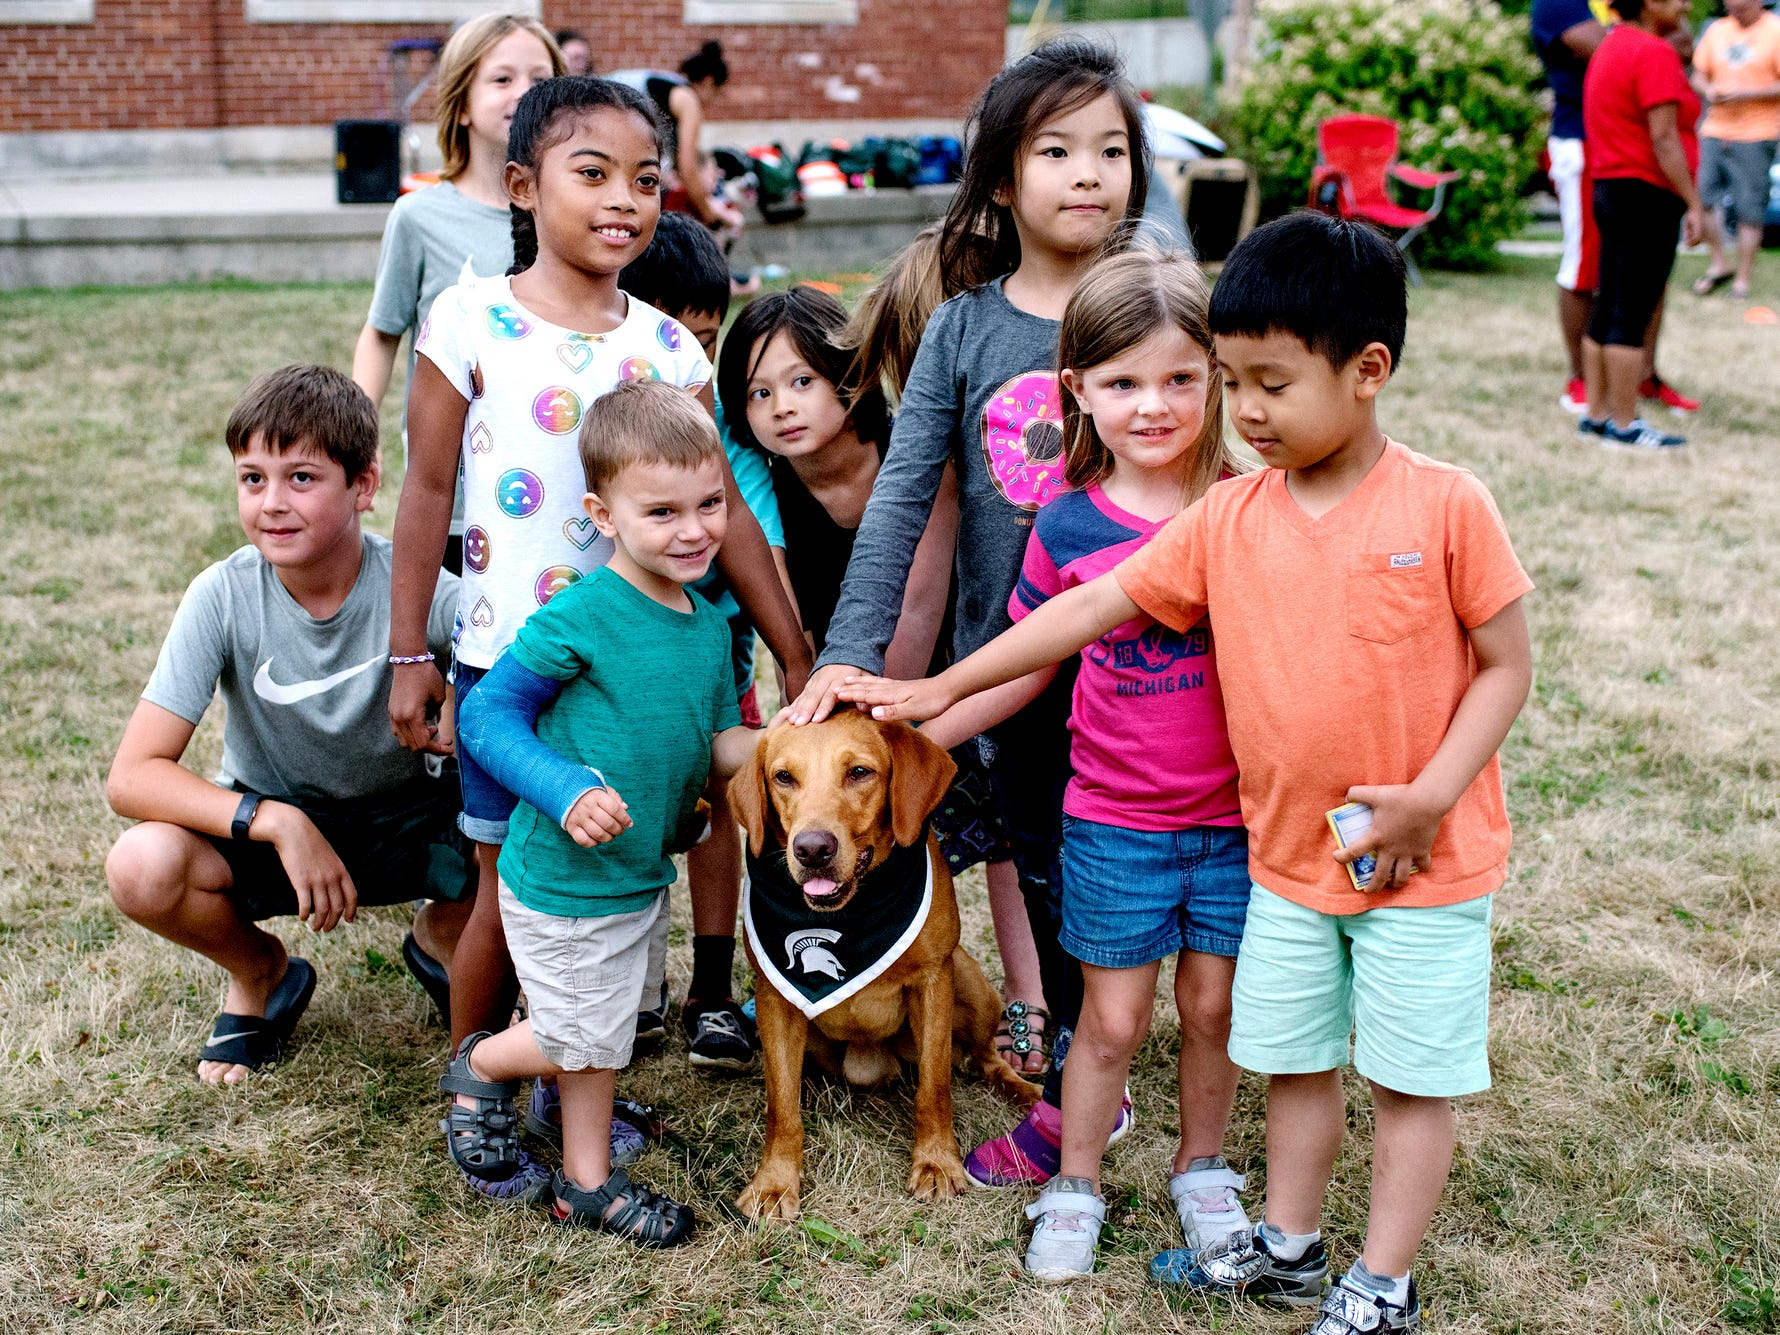 Children gather around Zeke the Wonderdog IV for photos after a performance at Play in the Park on Tuesday, July 31, 2018, at Valley Court Park in East Lansing.